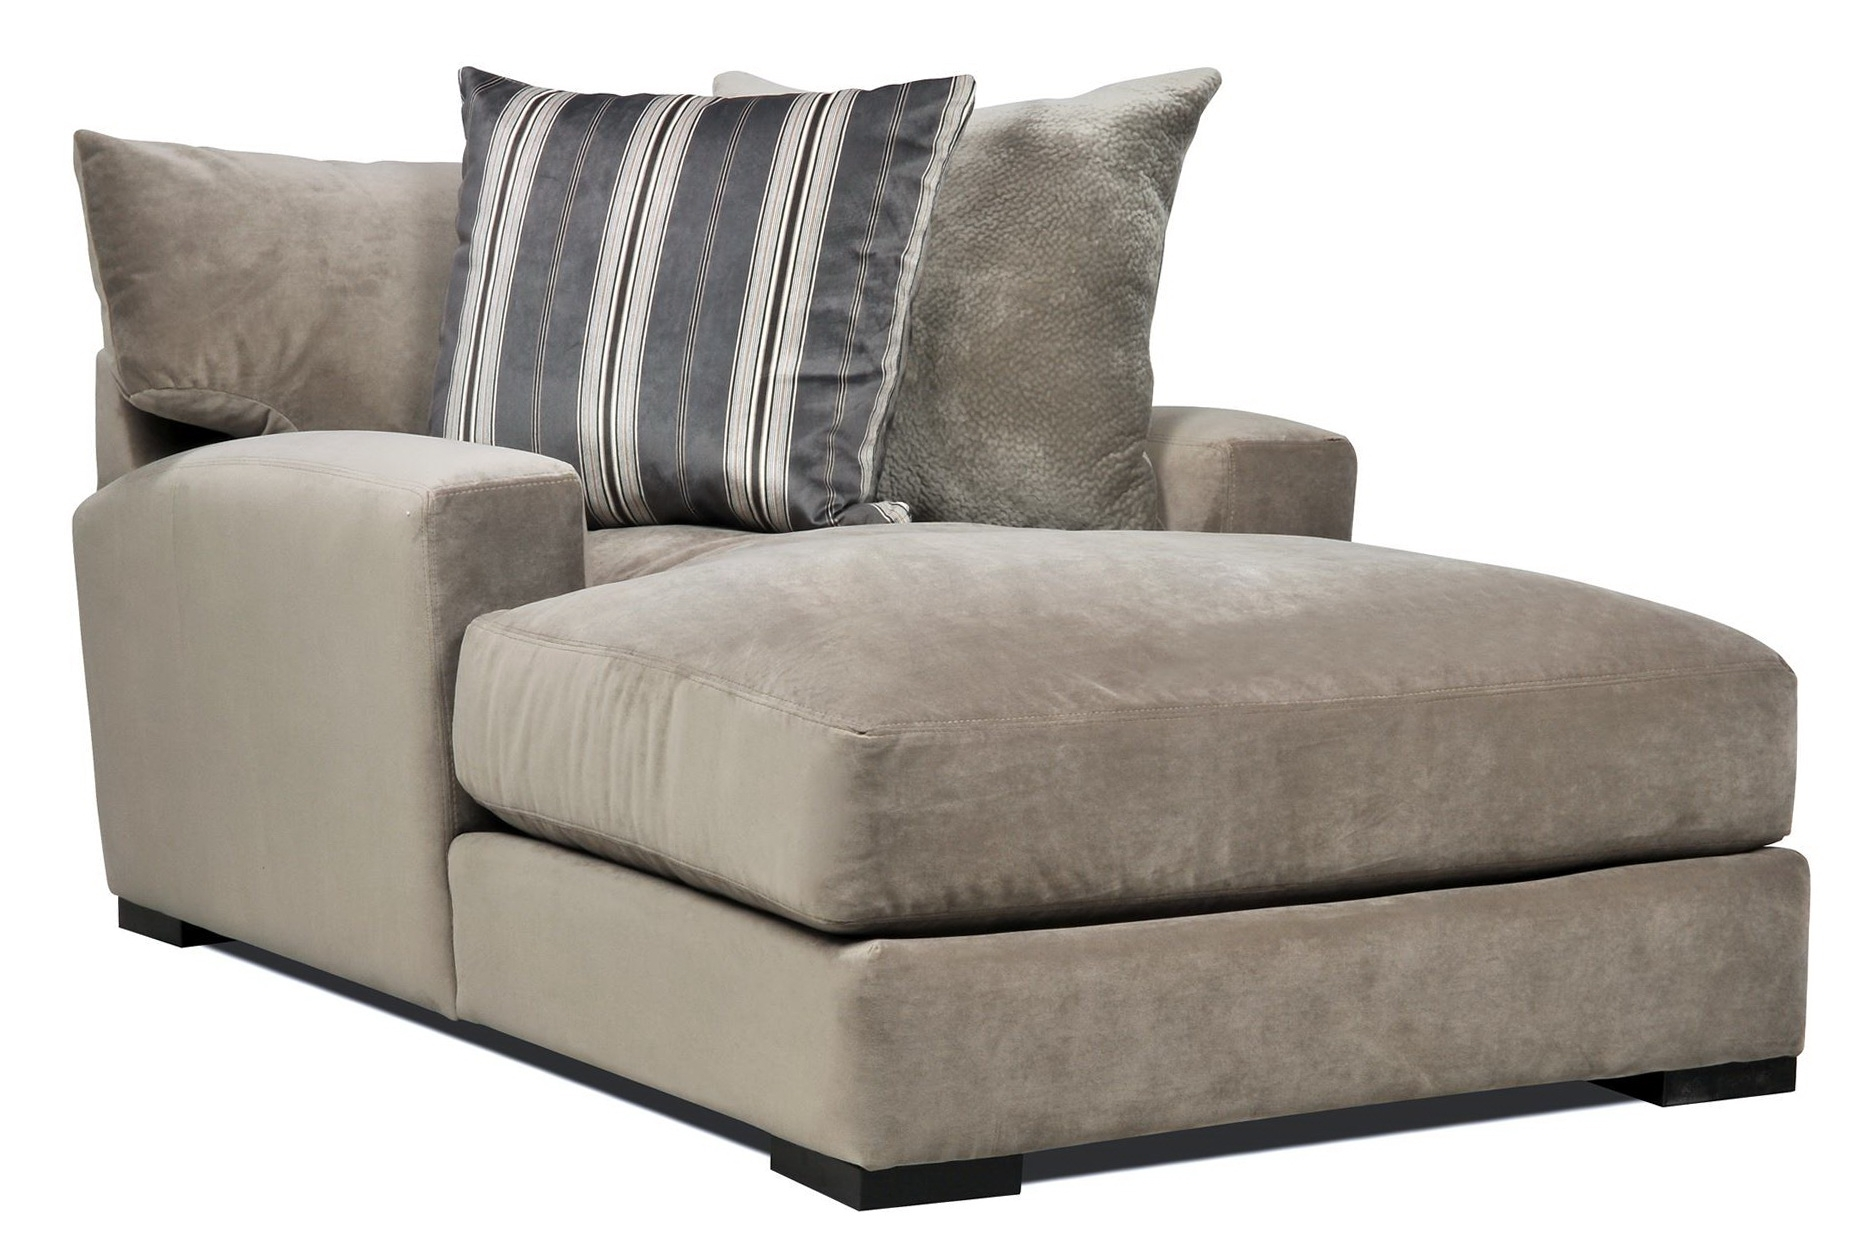 Trendy Double Wide Chaise Lounge Indoor With 2 Cushions (View 15 of 15)